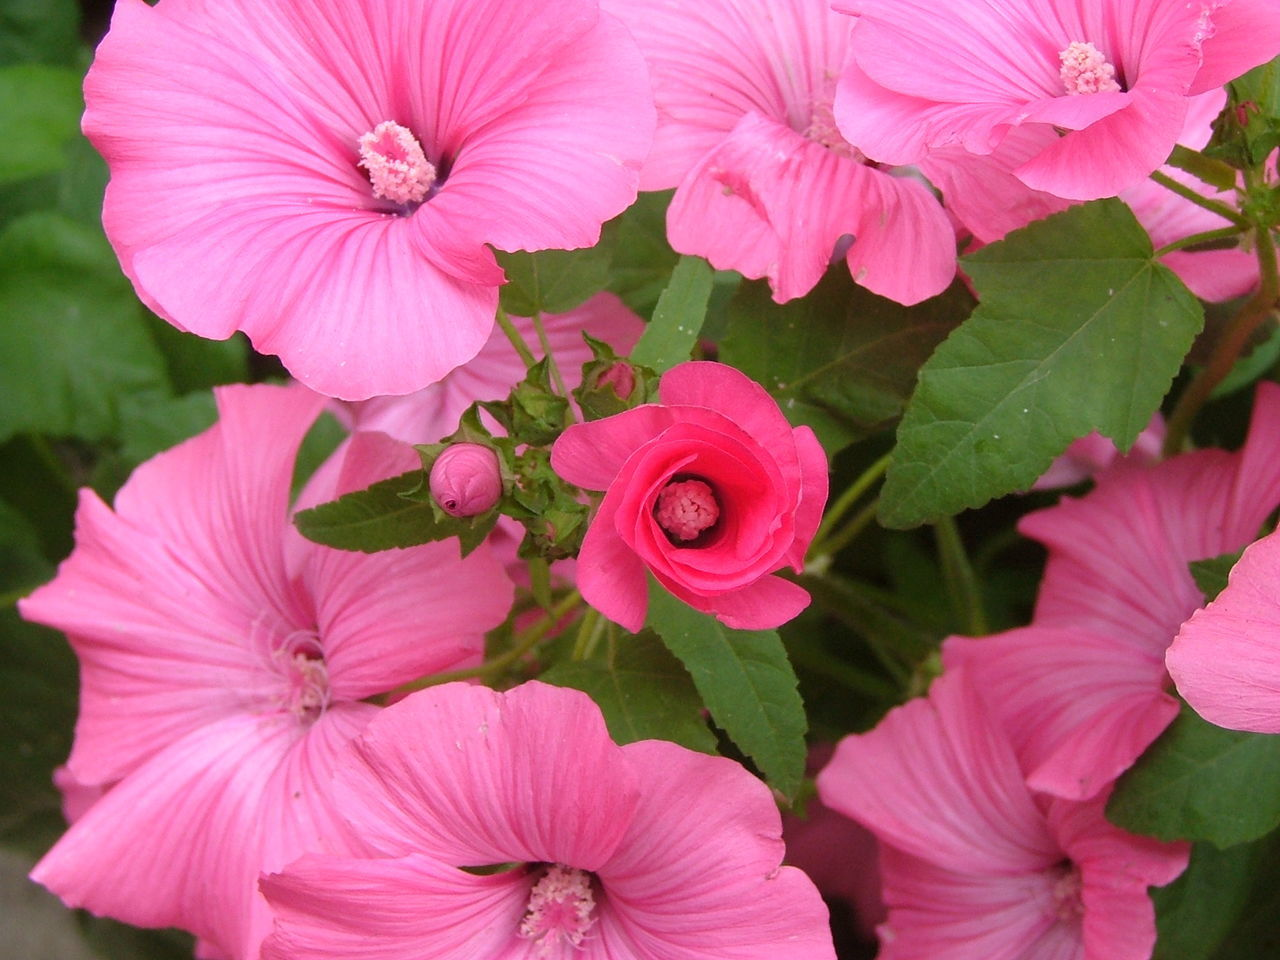 Close-Up Of Pink Flowers Growing Outdoors